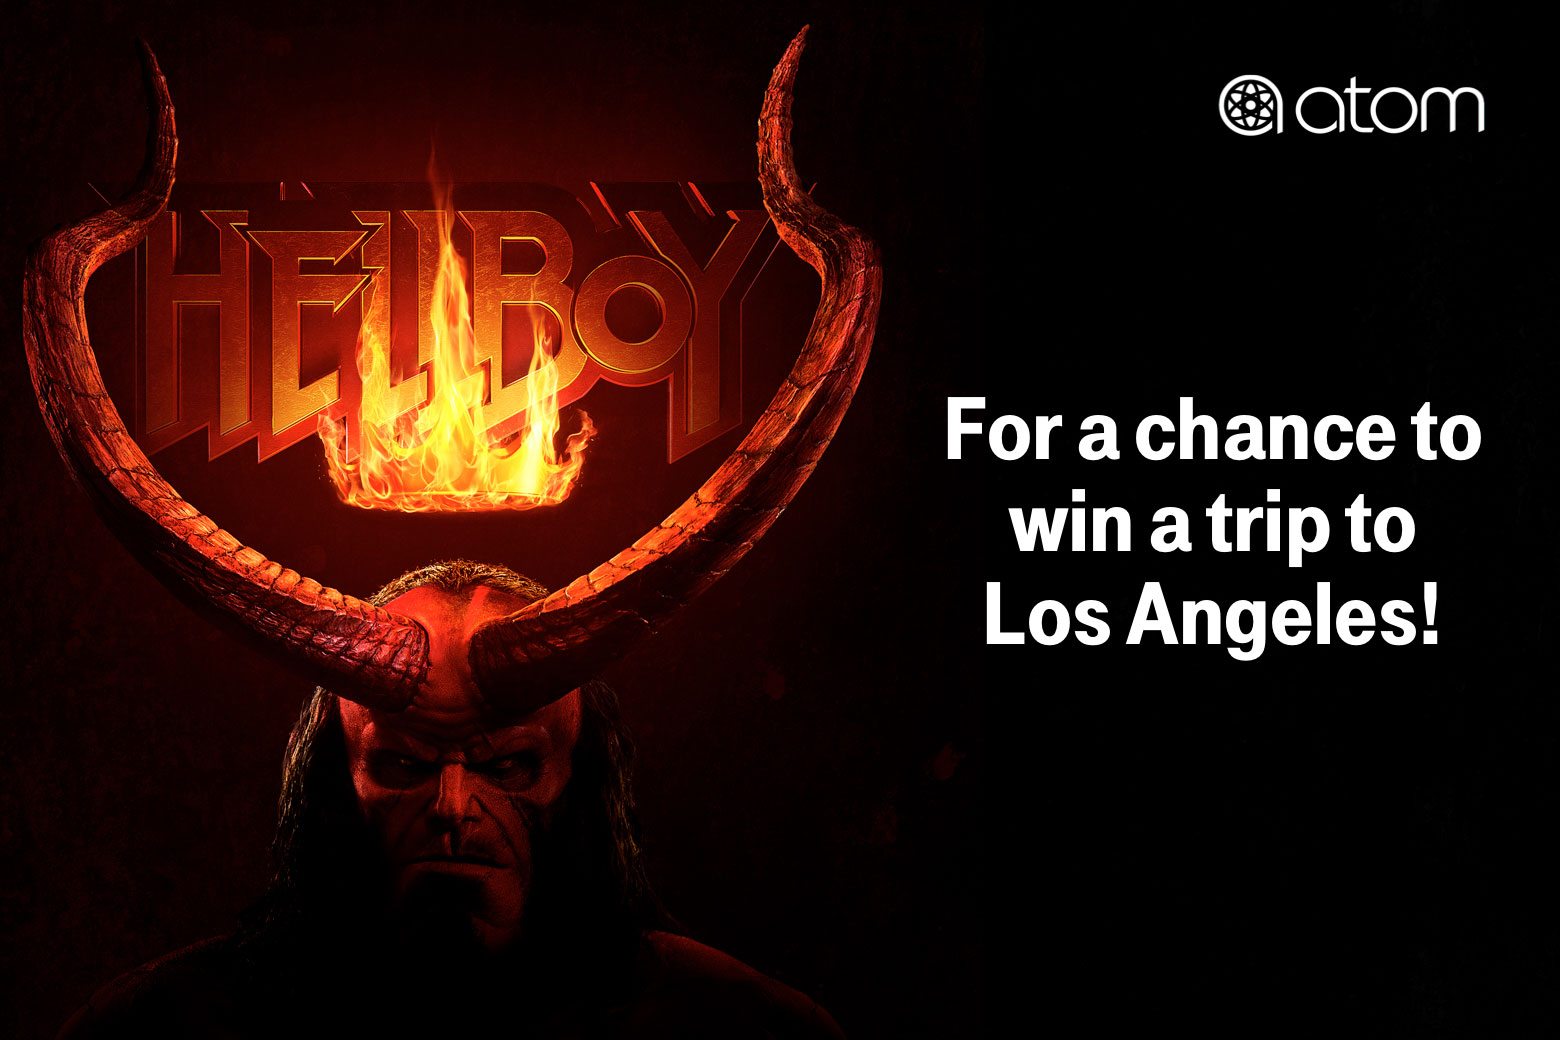 Atom. For a chance to win a trip to Los Angeles!